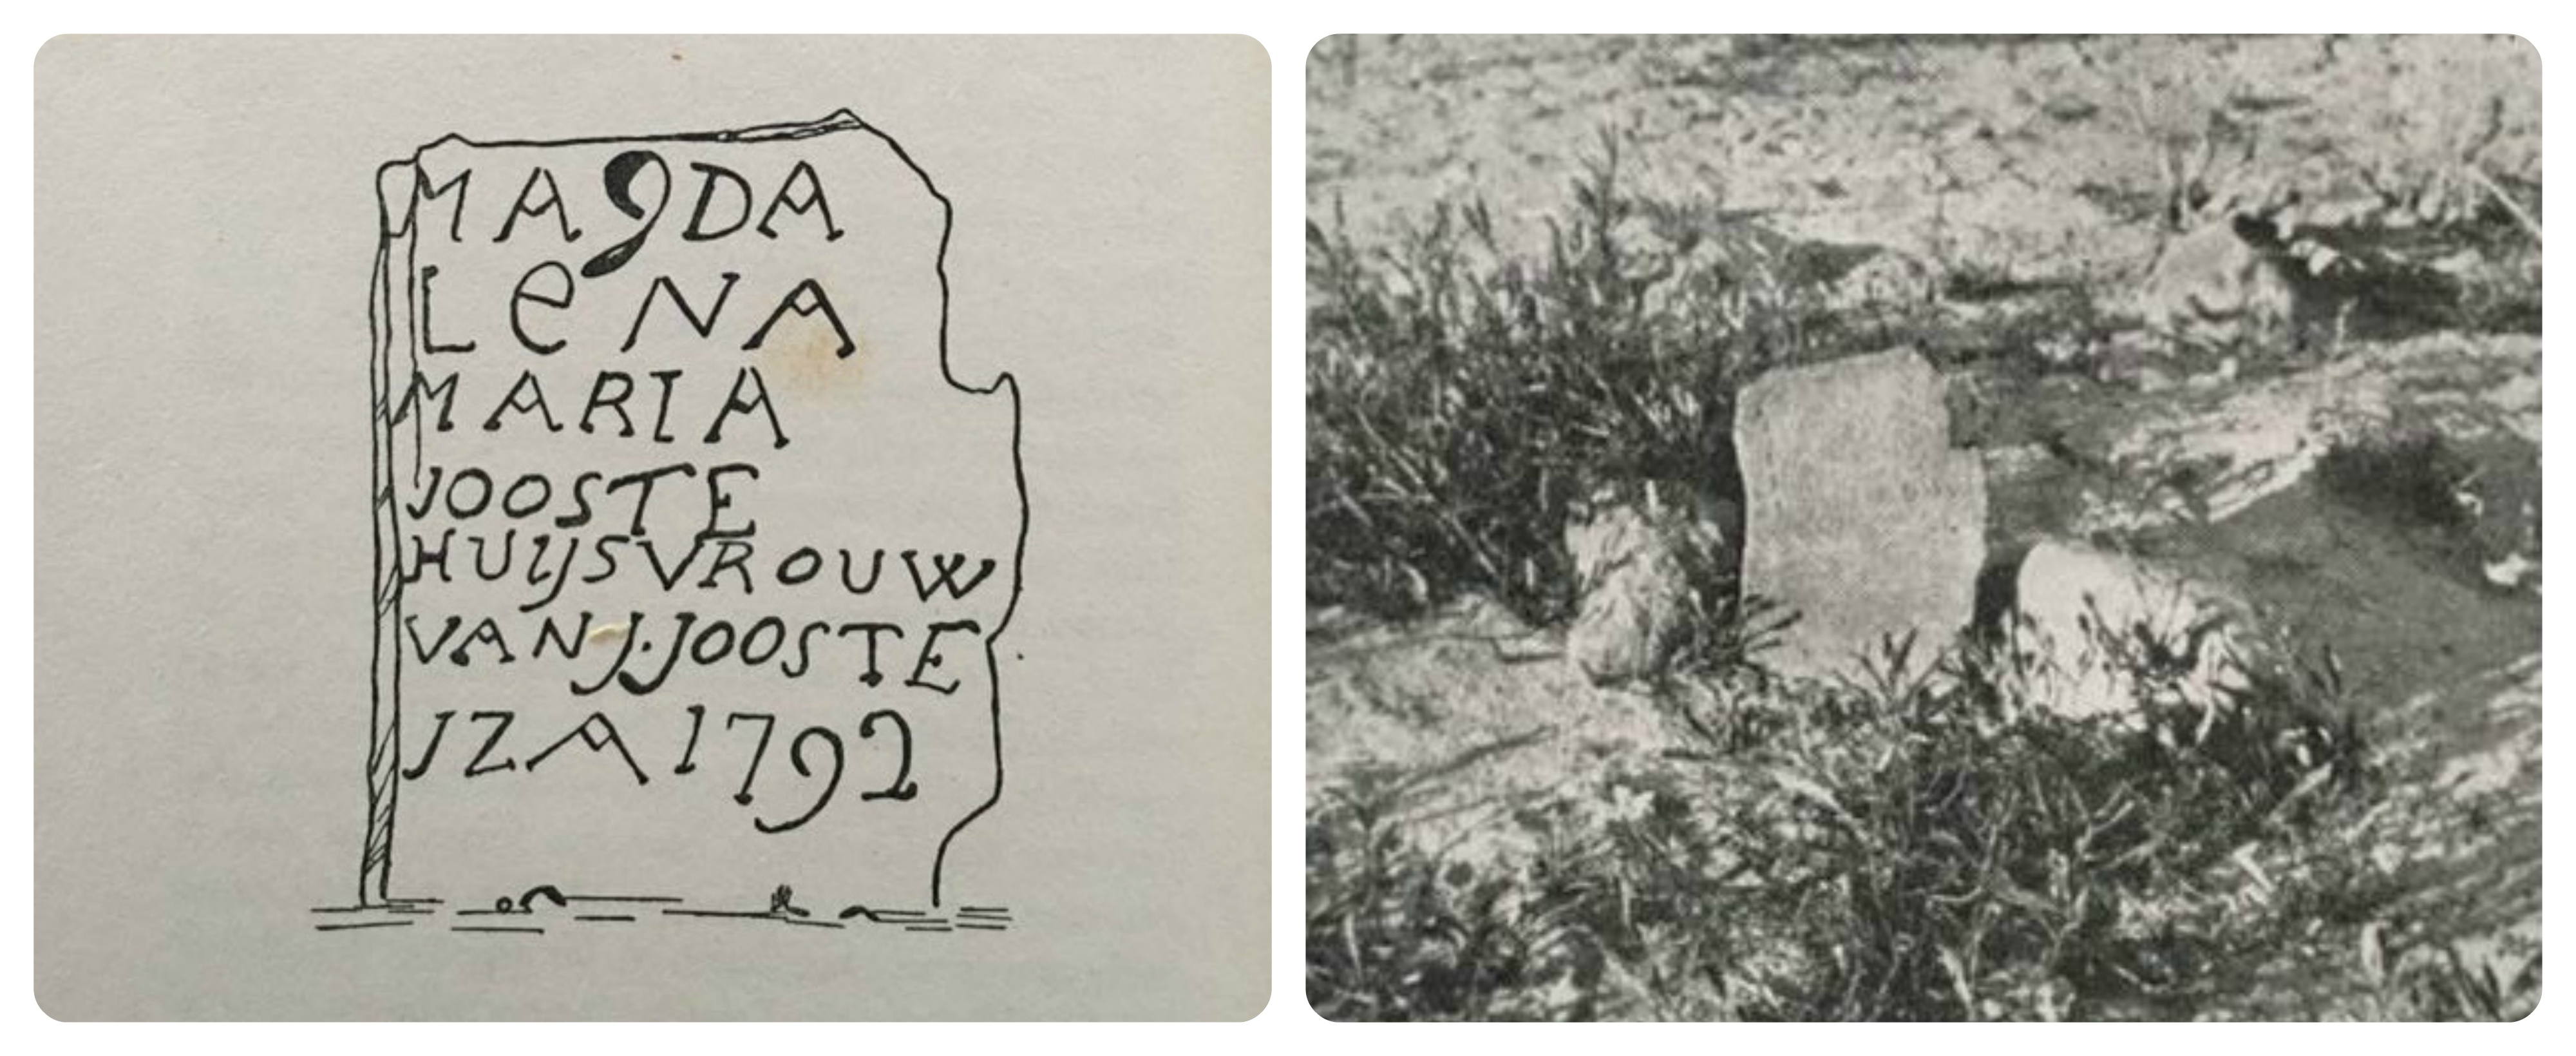 A drawing and a photograph by E.E. Mossop of Maria Magdalena Jooste's grave, which has since disappeared.